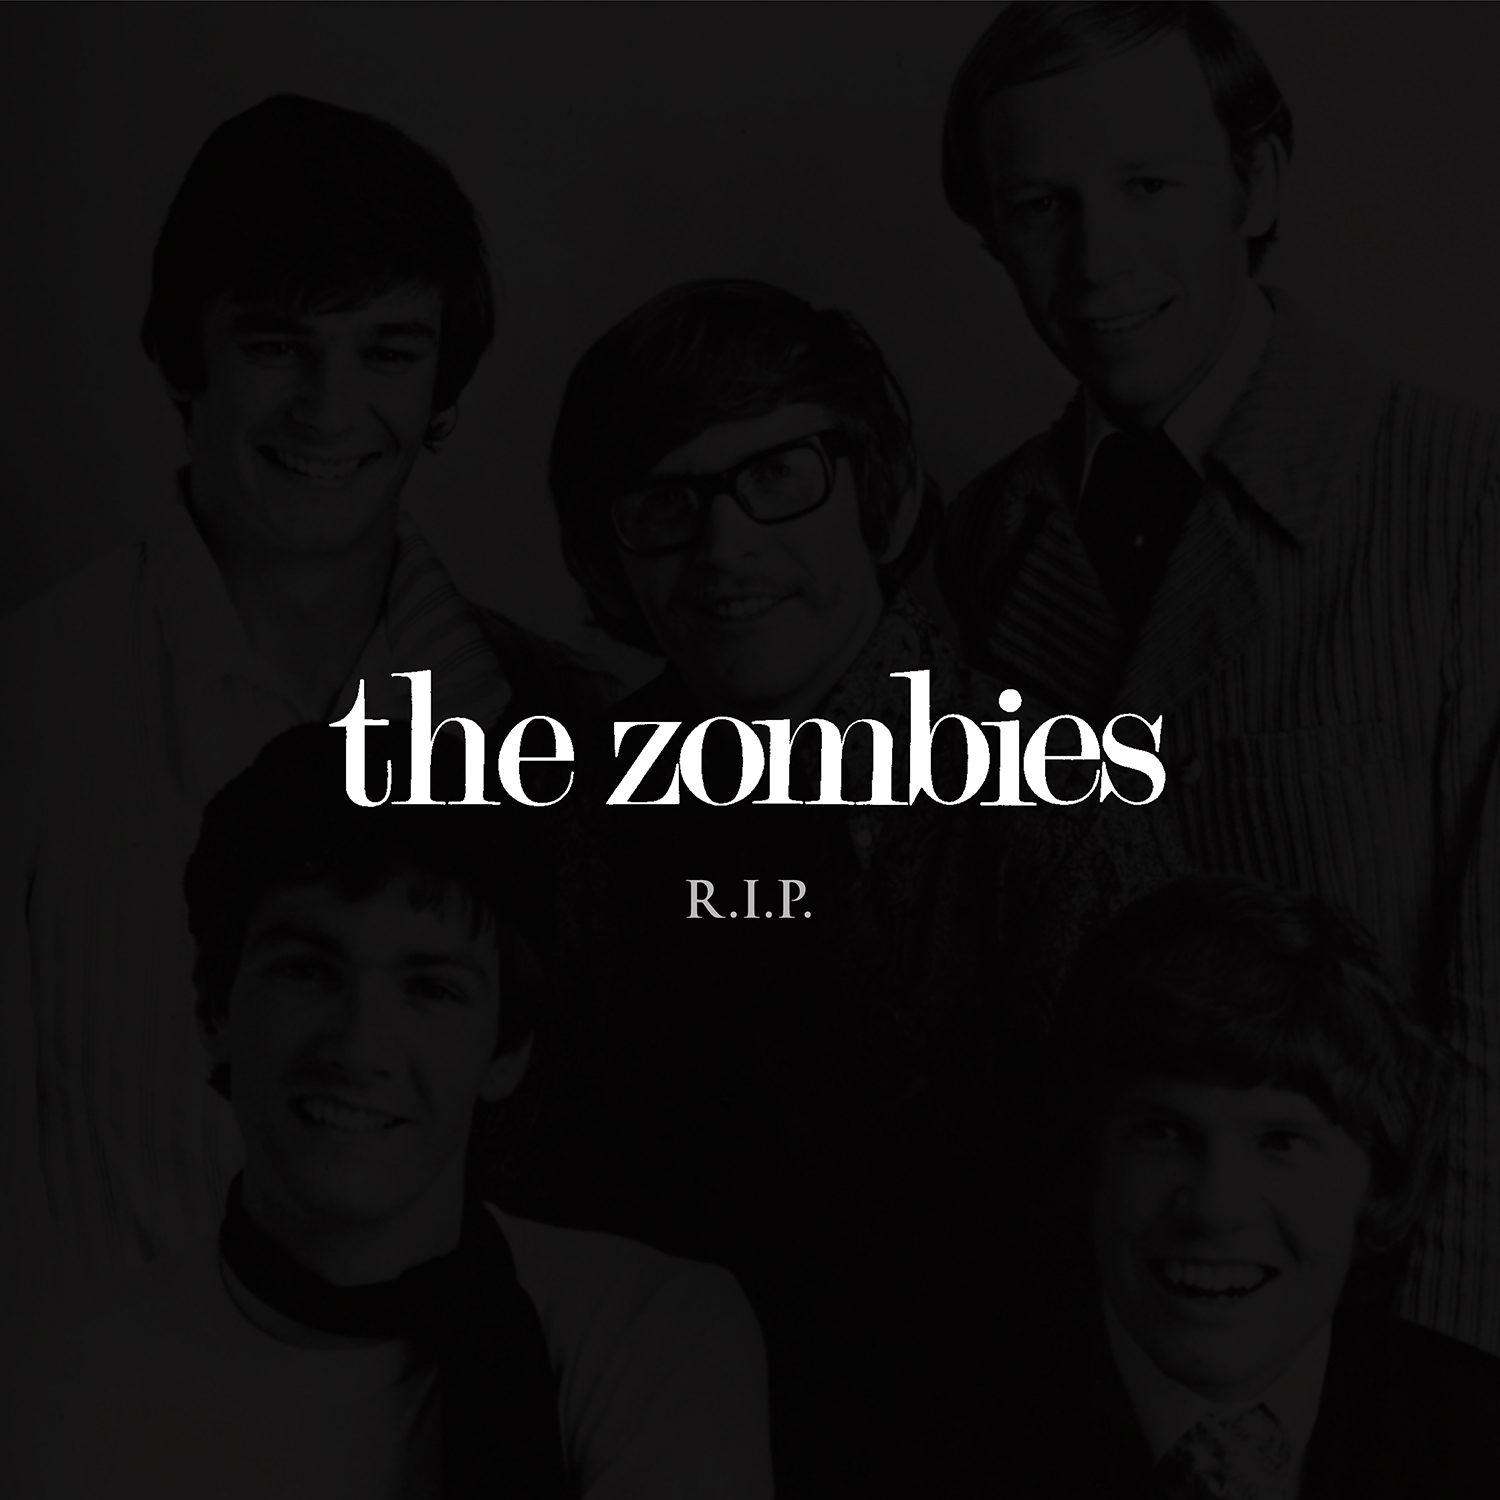 The Zombies - R.I.P. Album